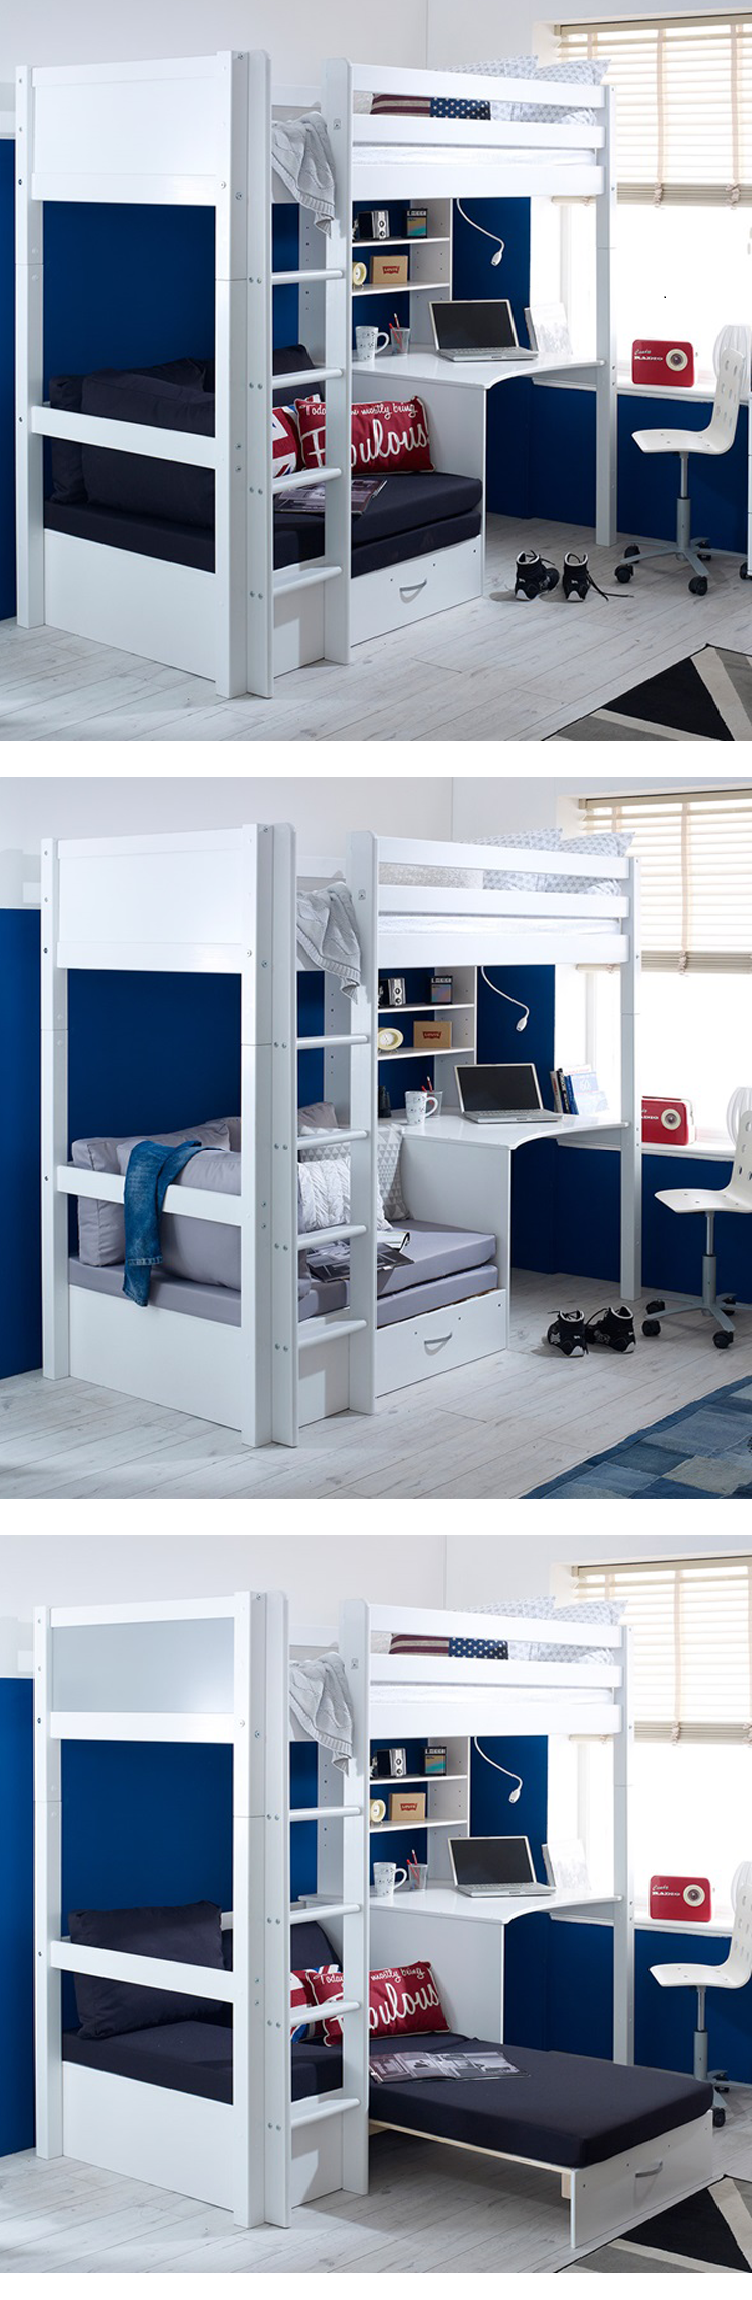 Miraculous No 1489 Morden Design High Sleeper Bedroom Furniture Wood Bunk Bed With Sofa Bed And Desk View Bunk Bed Babycasa Product Details From Huaian Evergreenethics Interior Chair Design Evergreenethicsorg